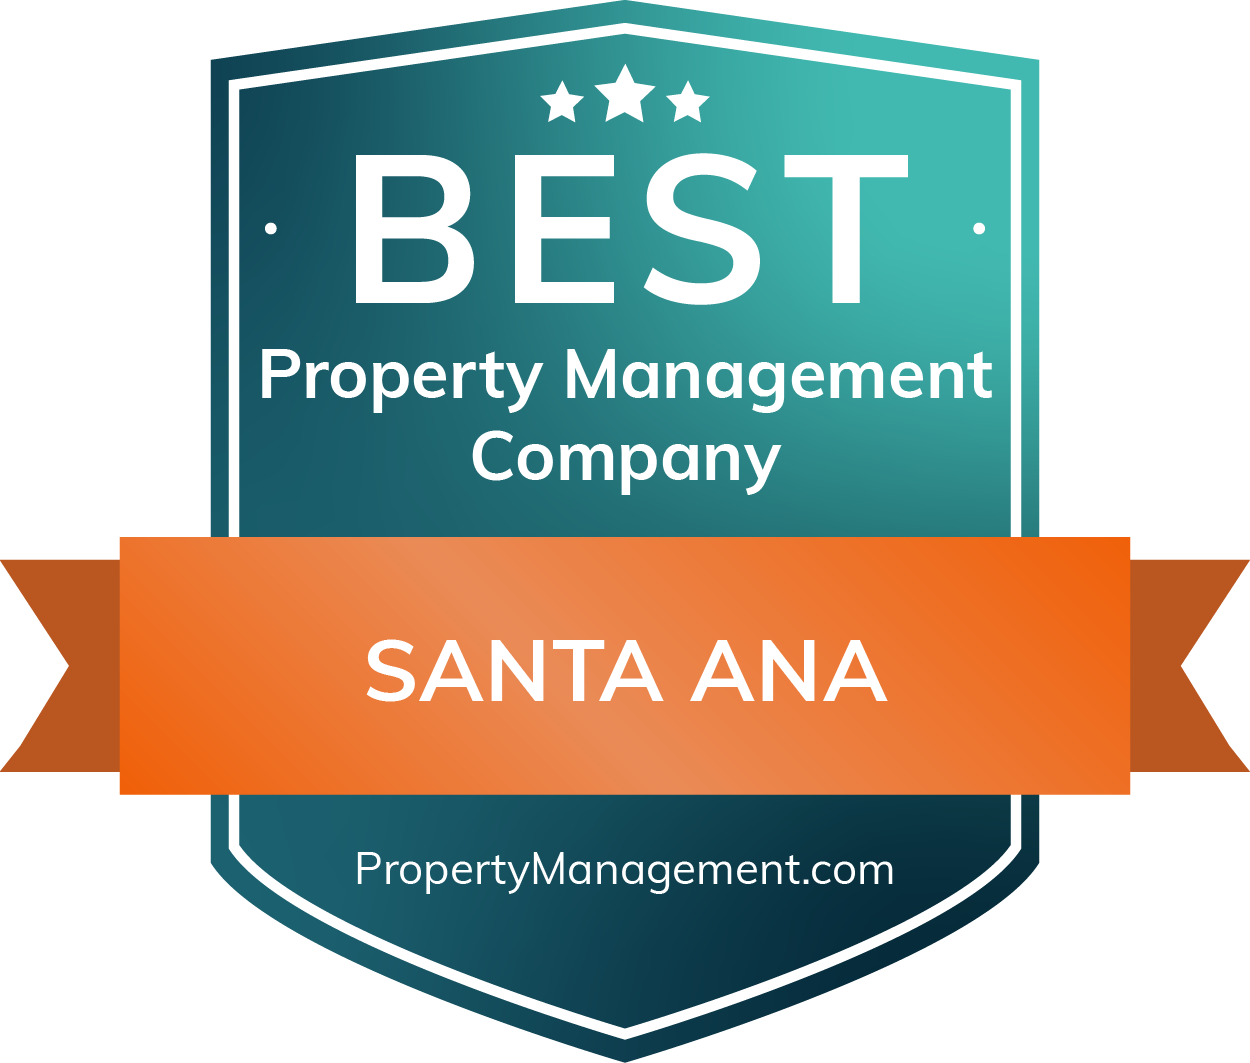 The Best Property Management in Santa Ana, CA